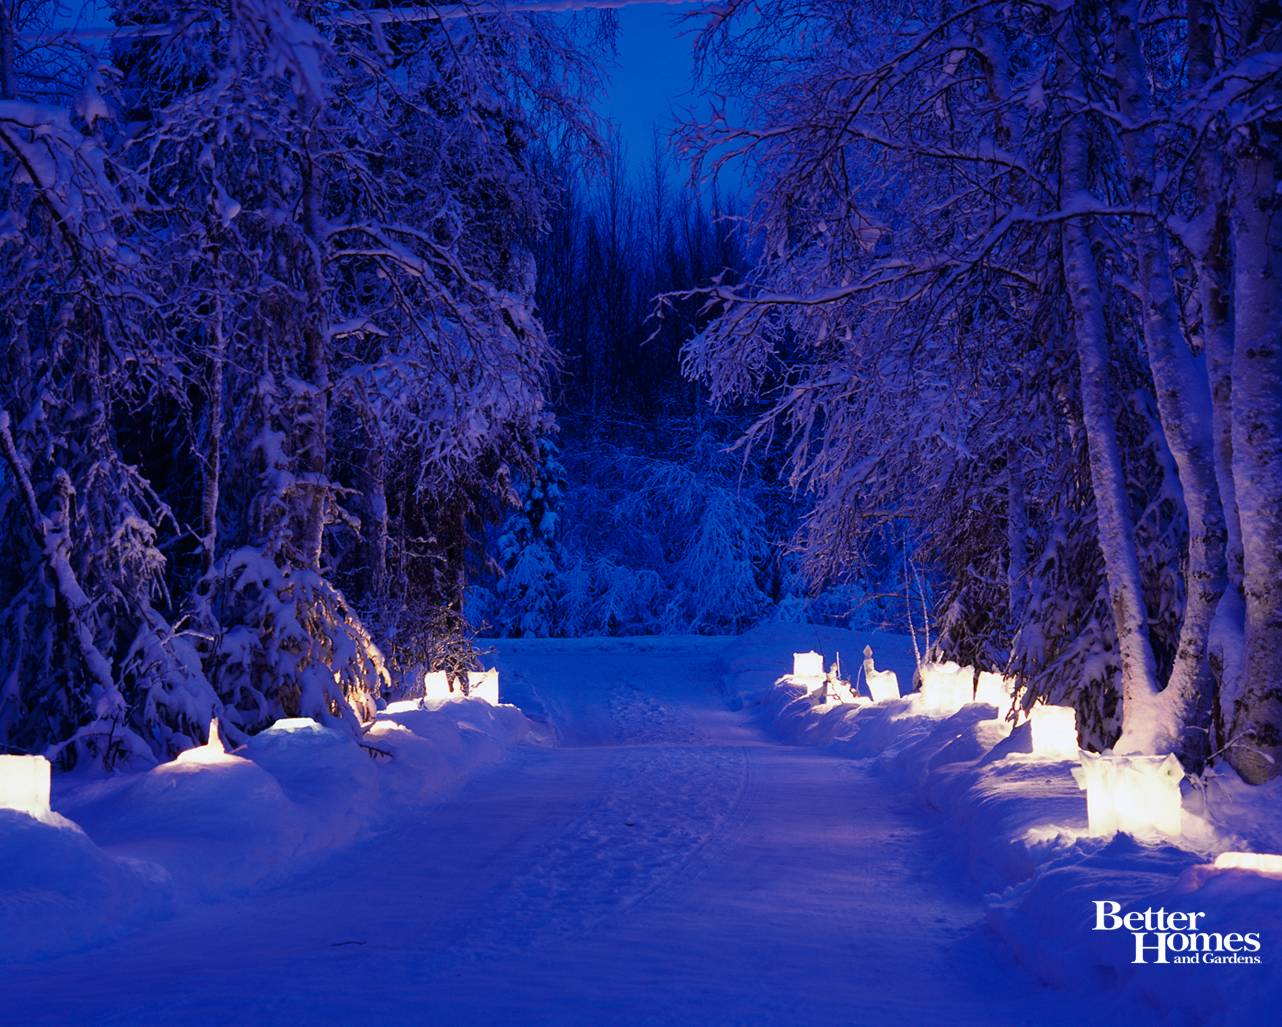 Winter Pictures For Desktop Backgrounds Wallpaper Cave